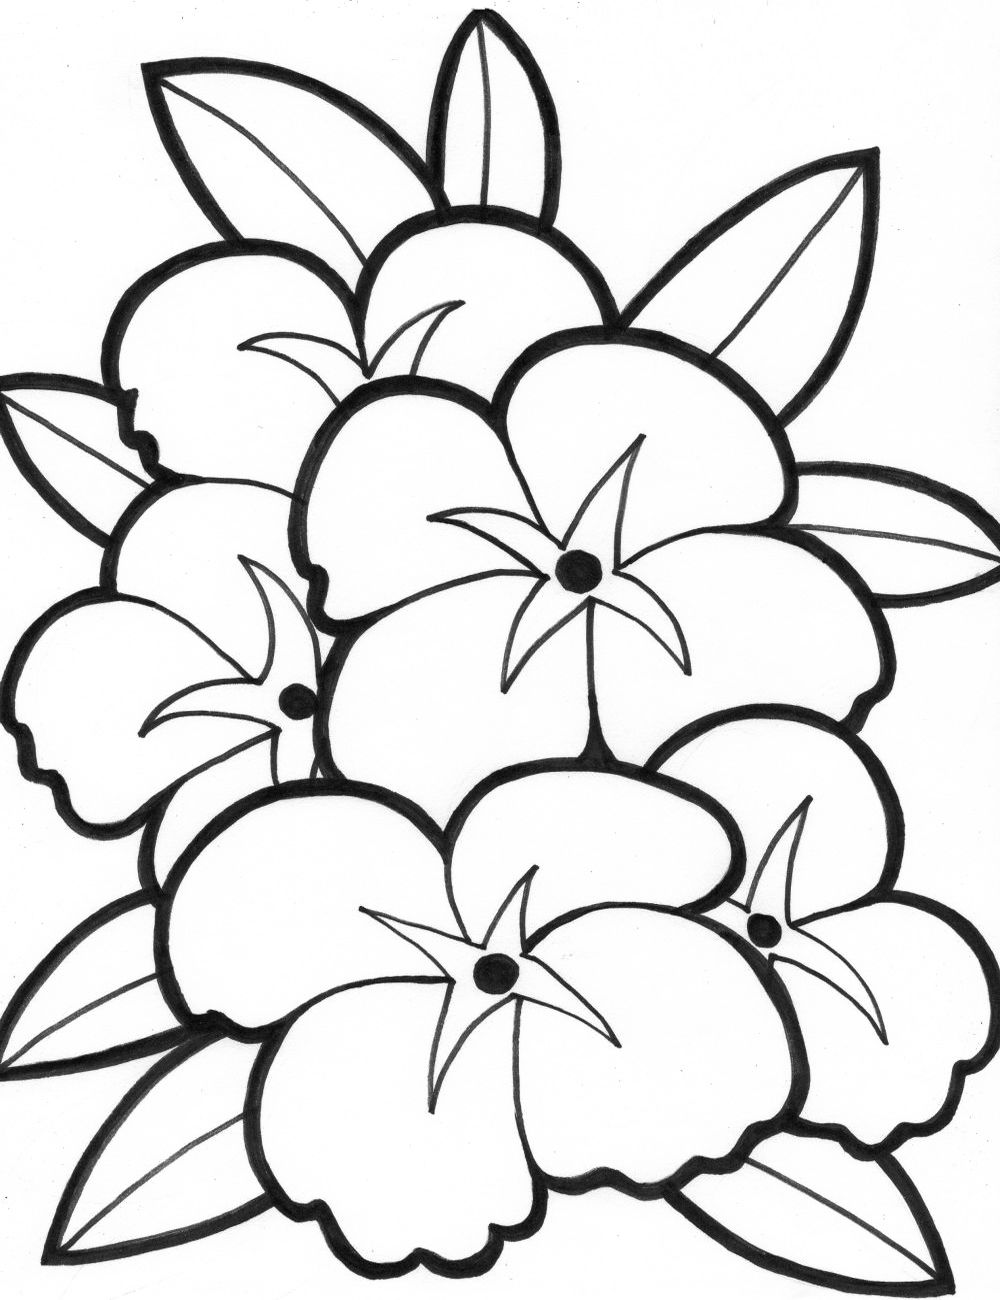 Simple Flower Coloring Pages (With images) Printable